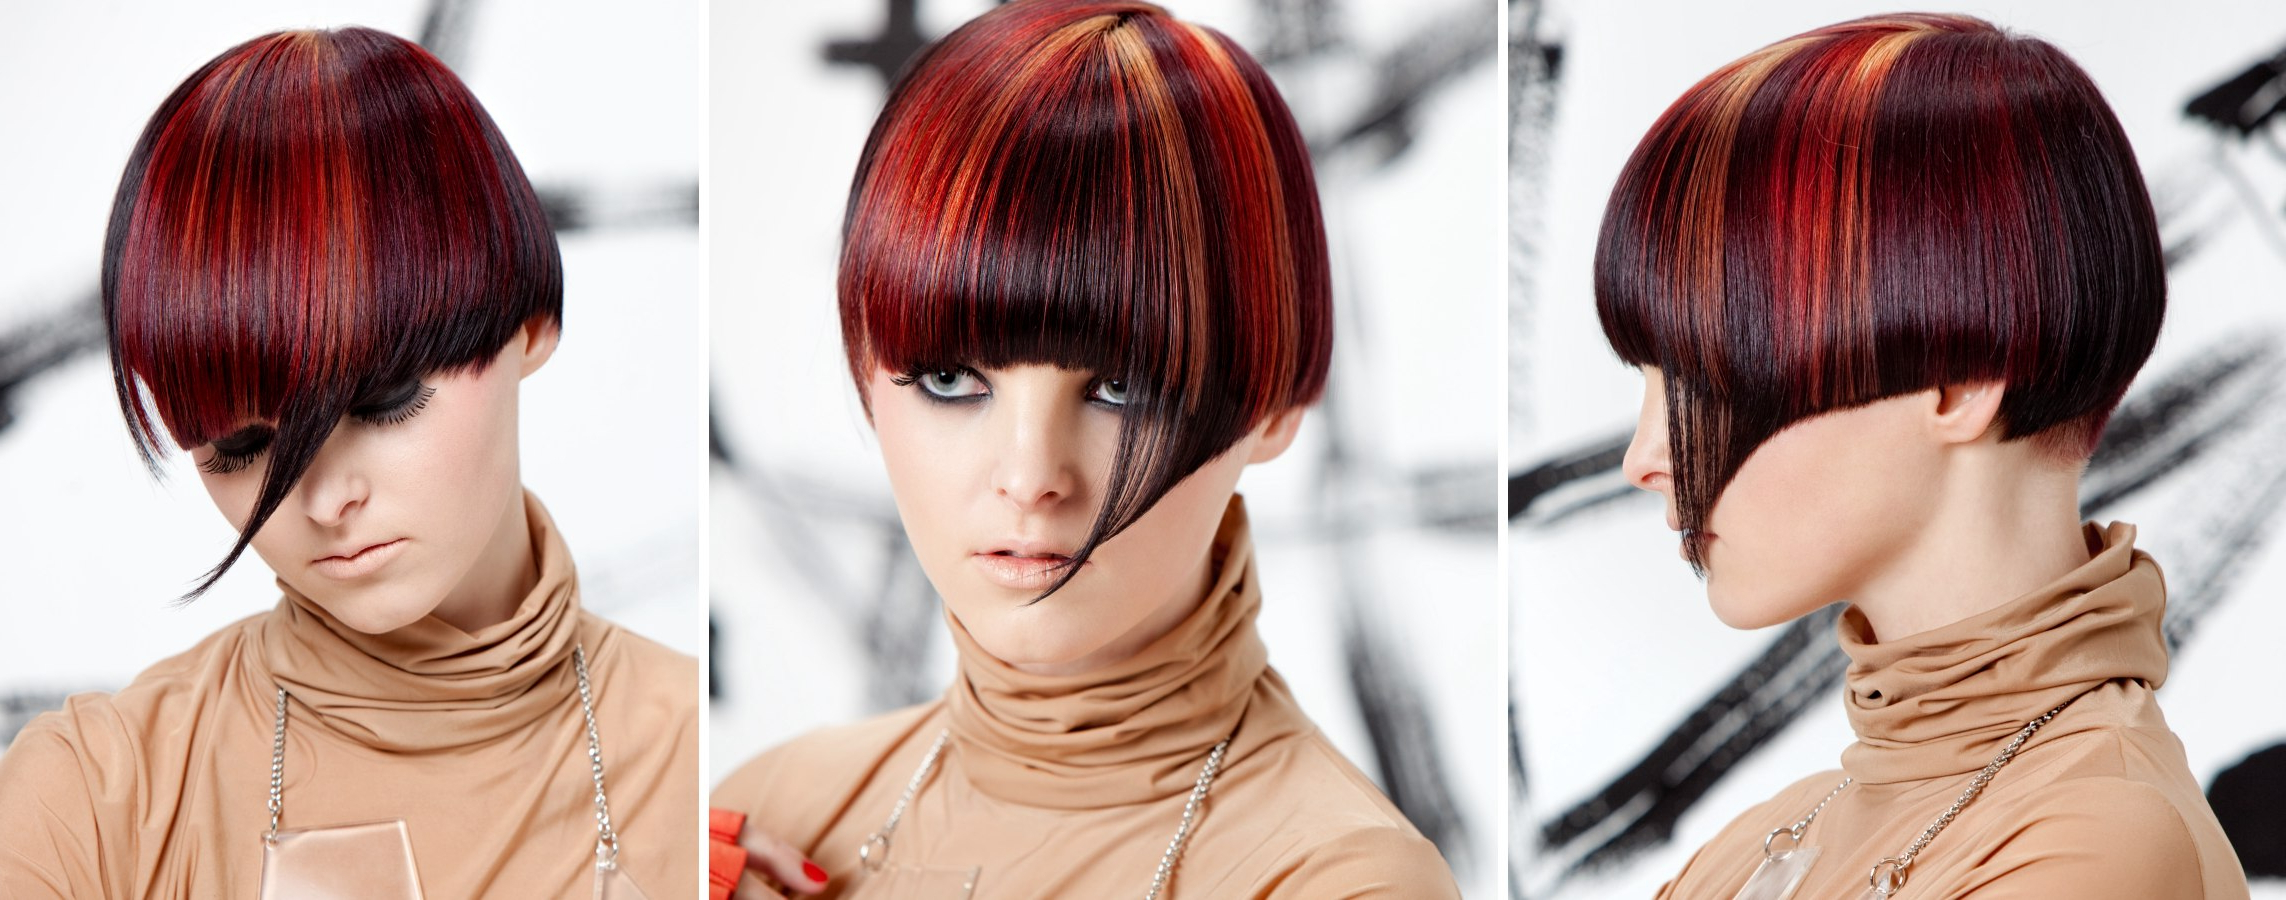 Recent Pageboy Maroon Red Pixie Haircuts For Cuts With Targeted Use Of Hair Color Effects (View 16 of 20)